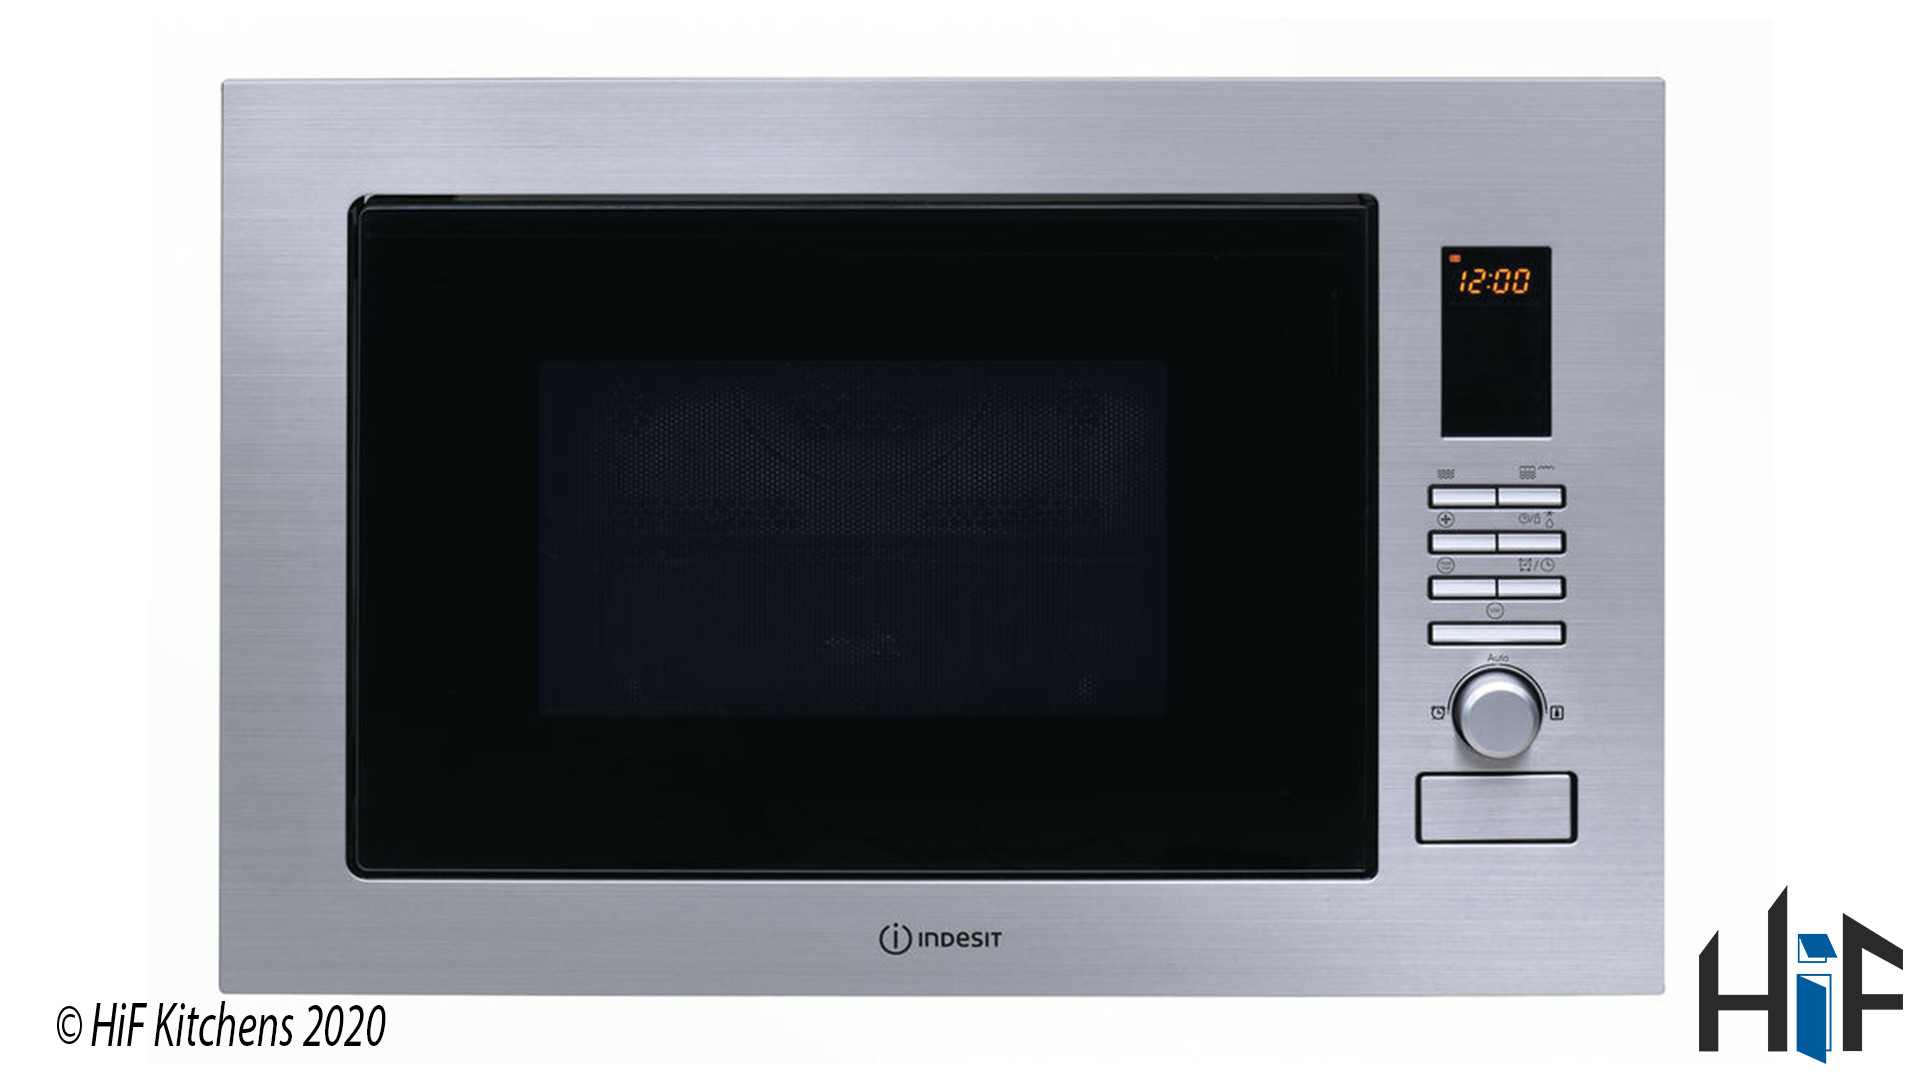 Indesit MWI222.2X Built-in Microwave